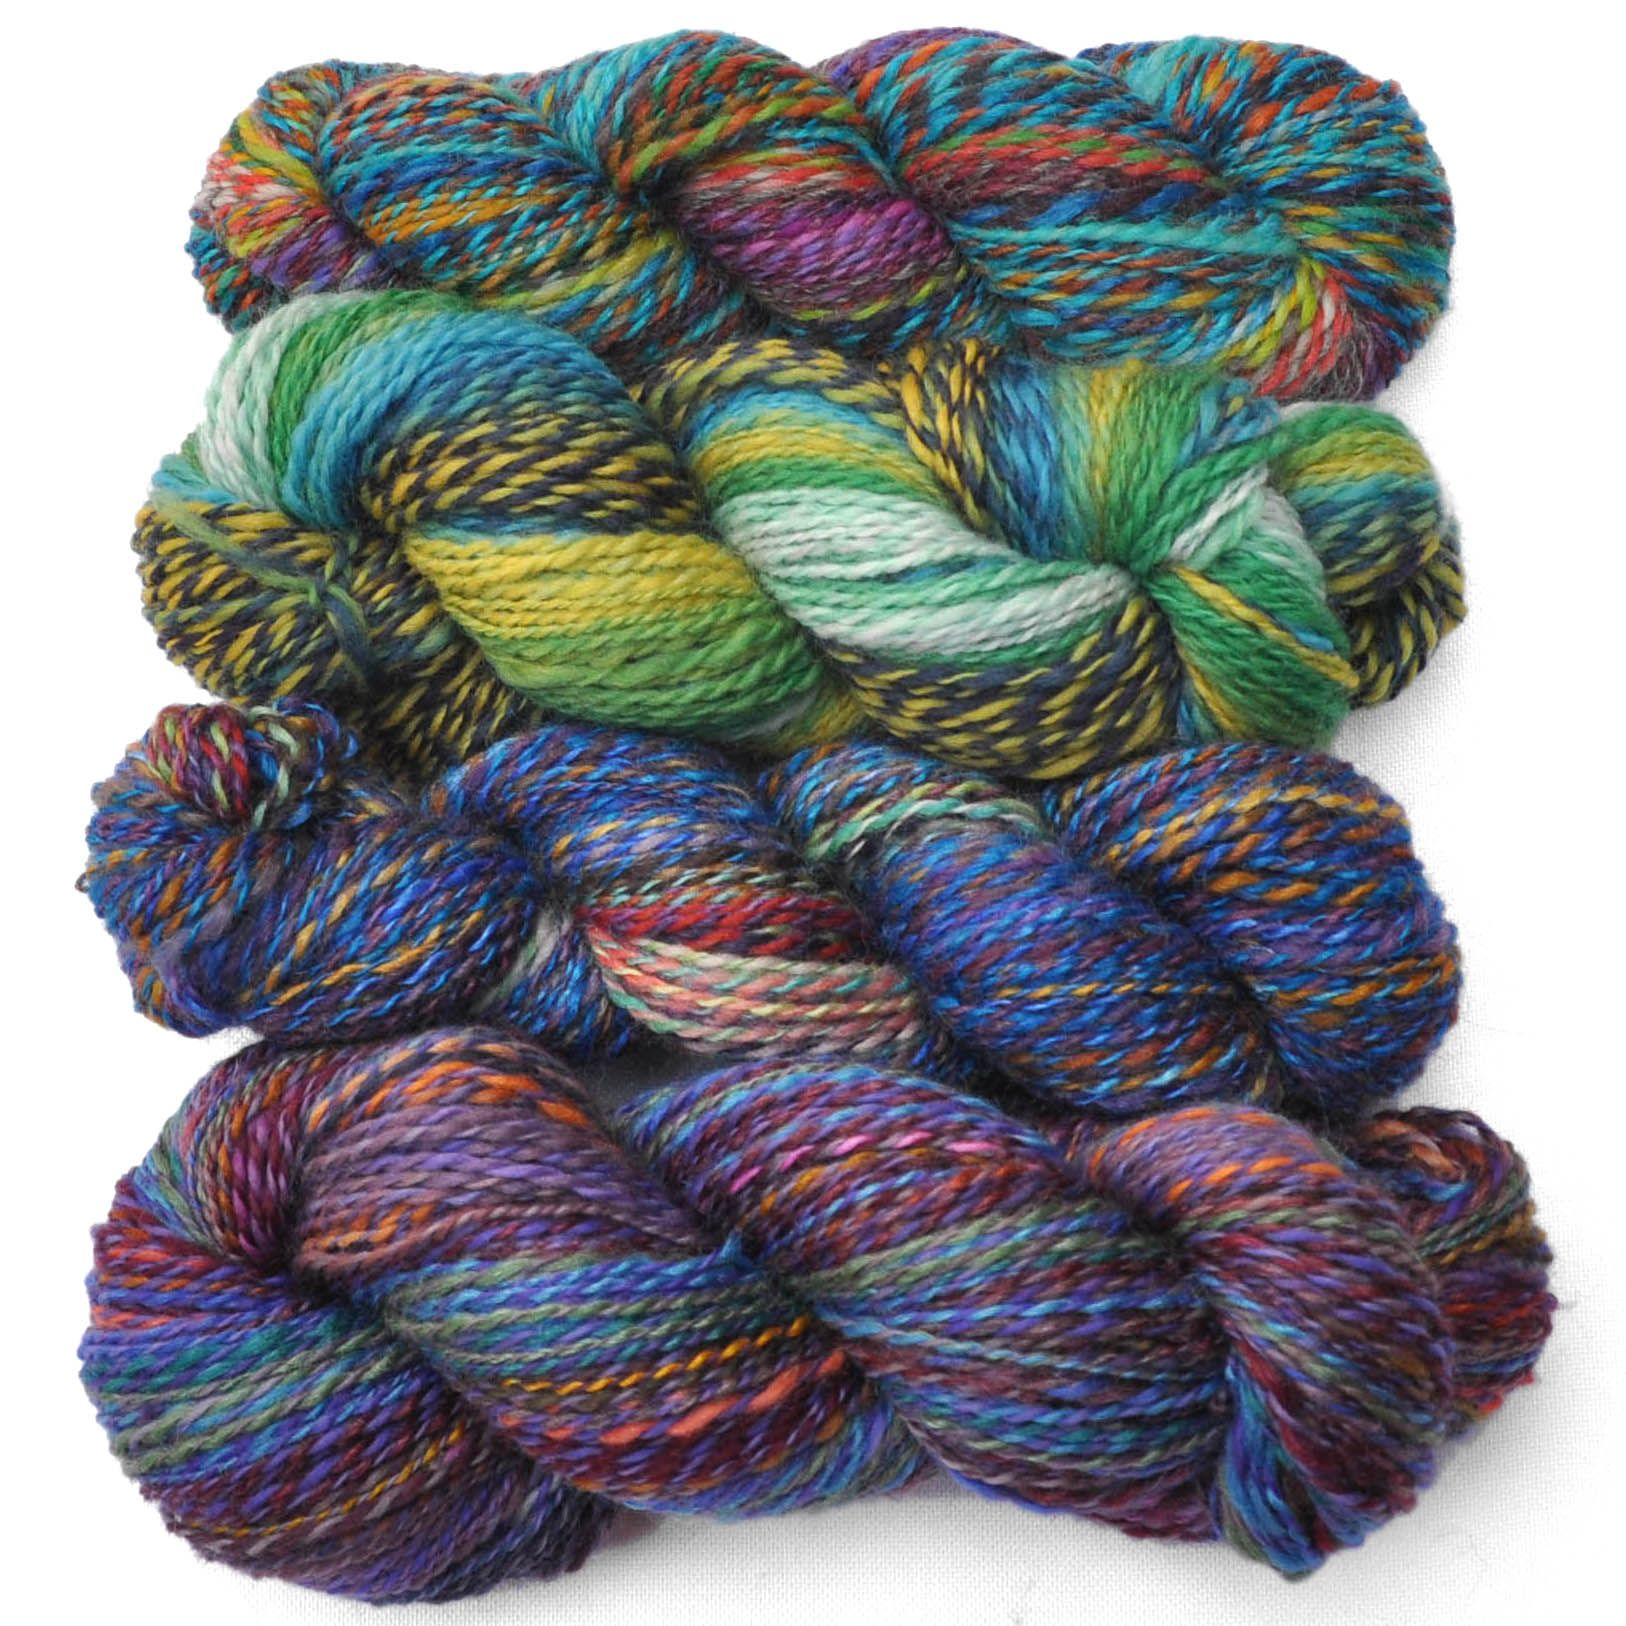 Patchwork handspun yarns, made from bits and pieces that didn't fit into other skeins